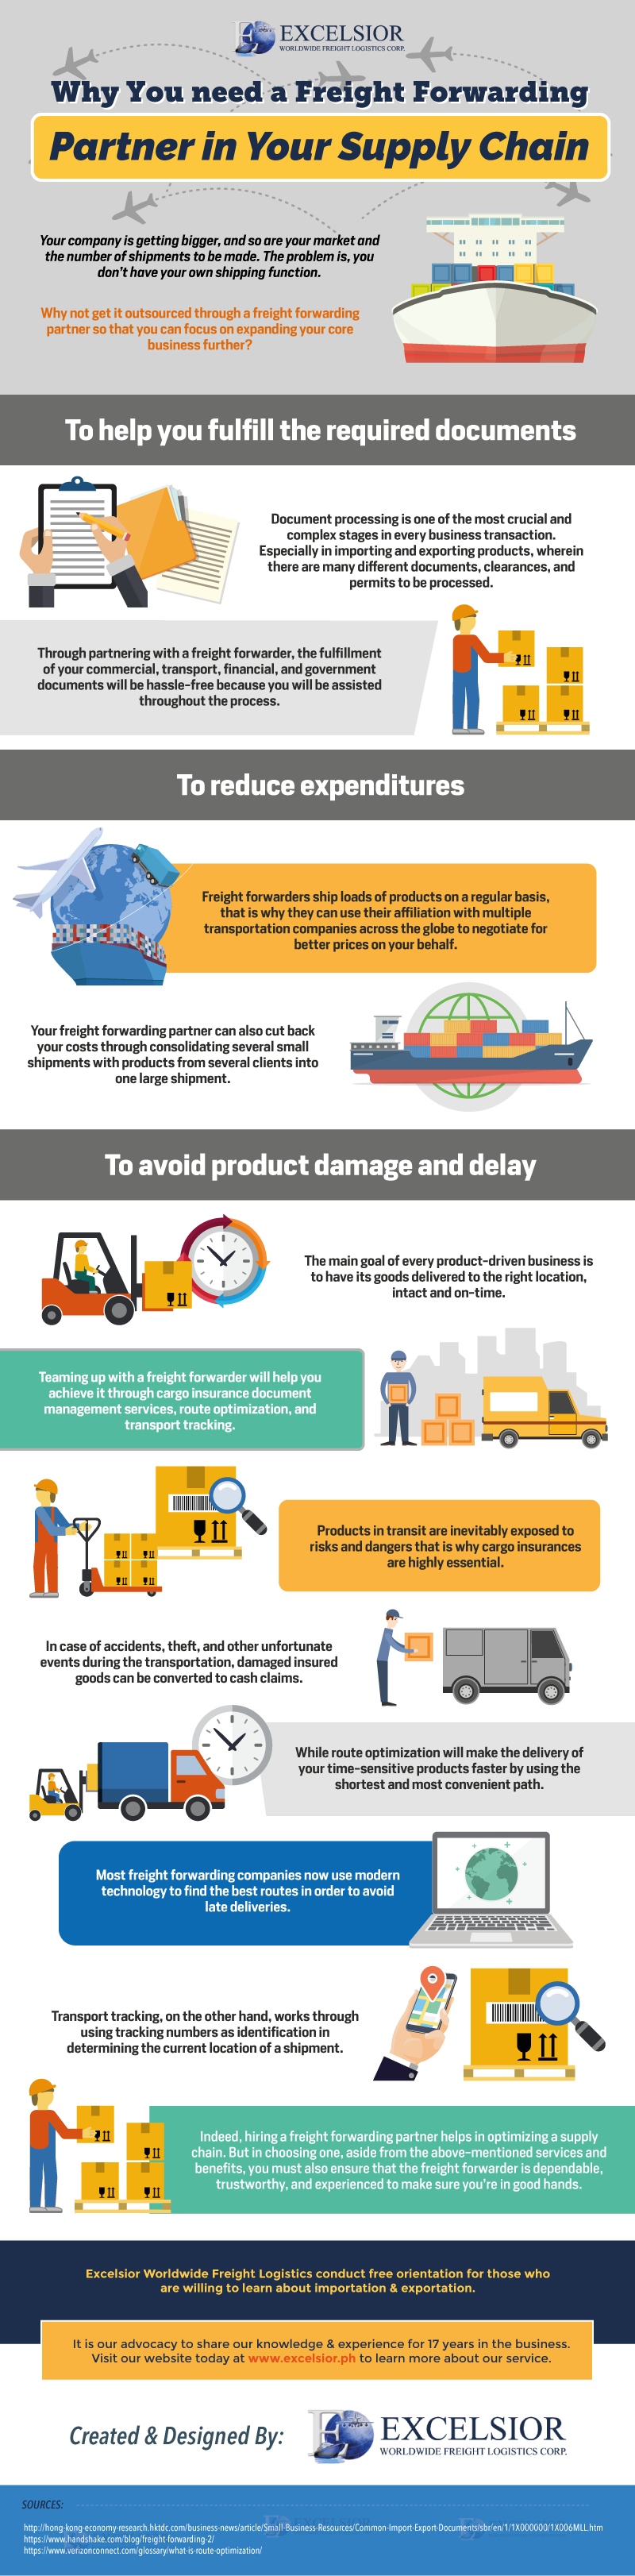 Why You Need a Freight Forwarding Partner in Your Supply Chain (Infographic)